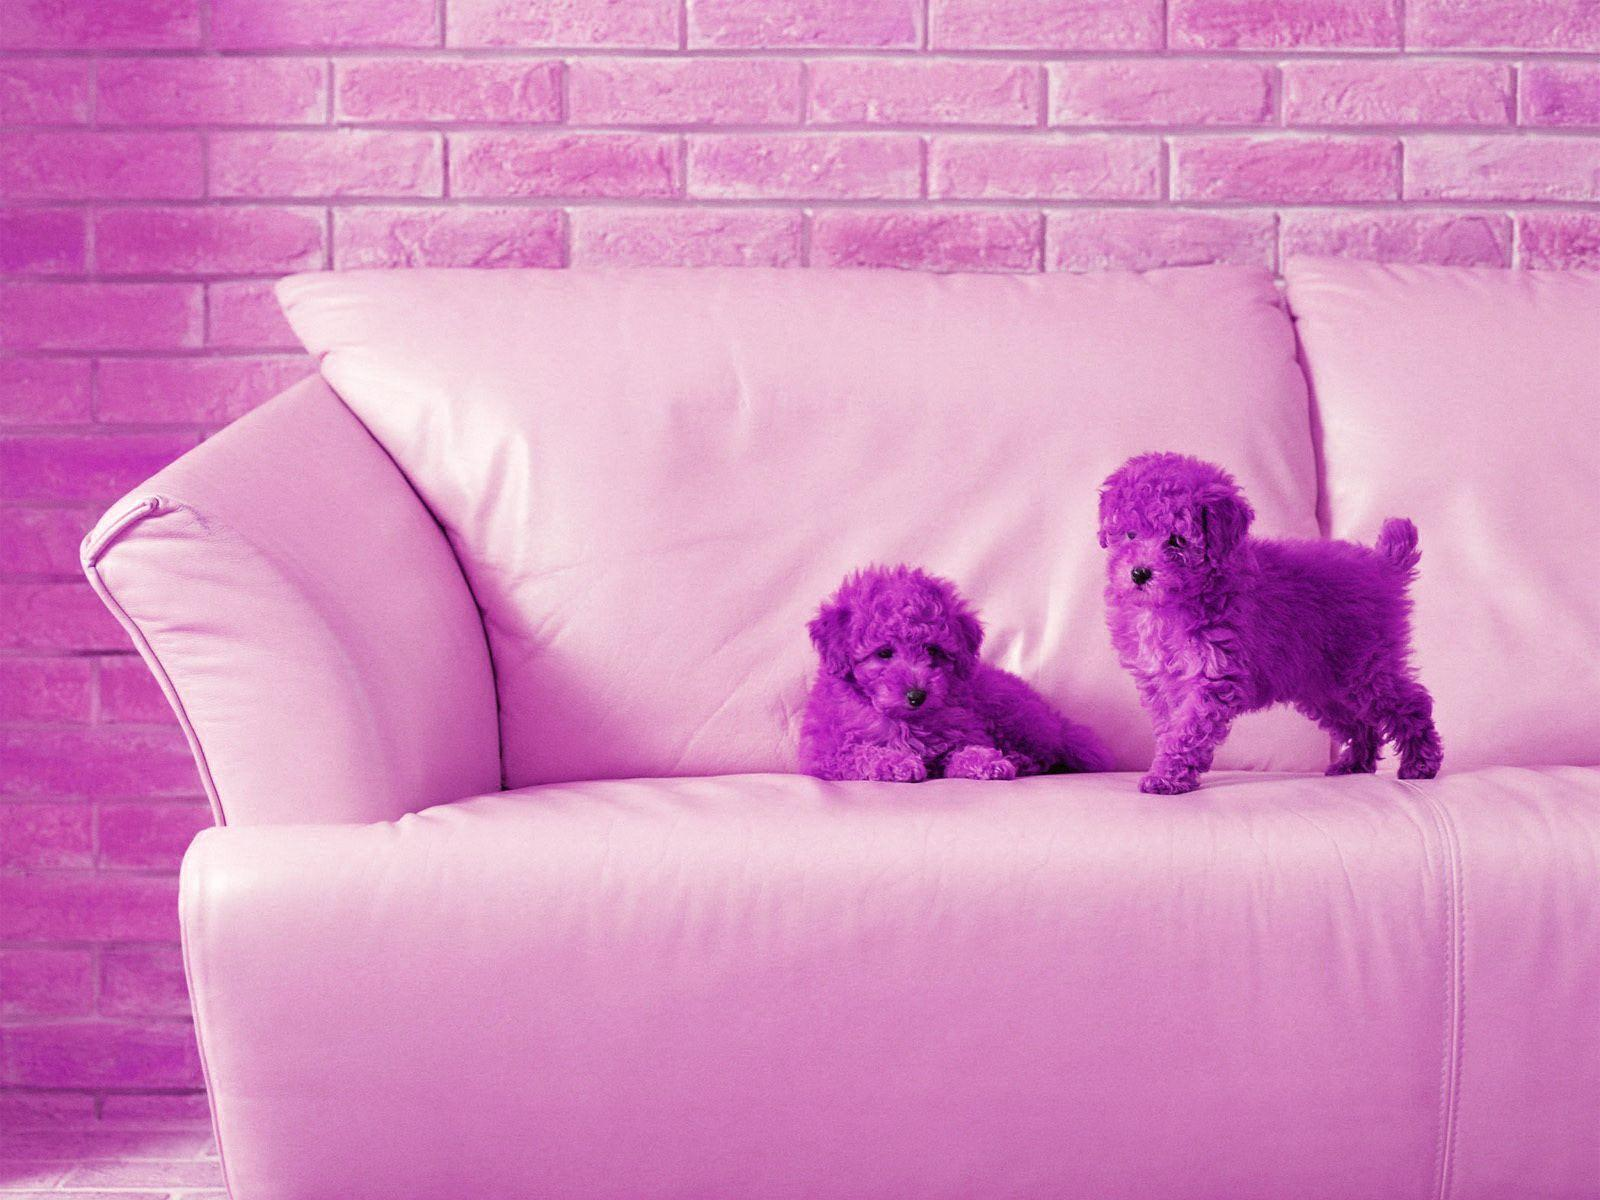 Cute wallpapers for computer wallpaper cave - Cute wallpapers ...